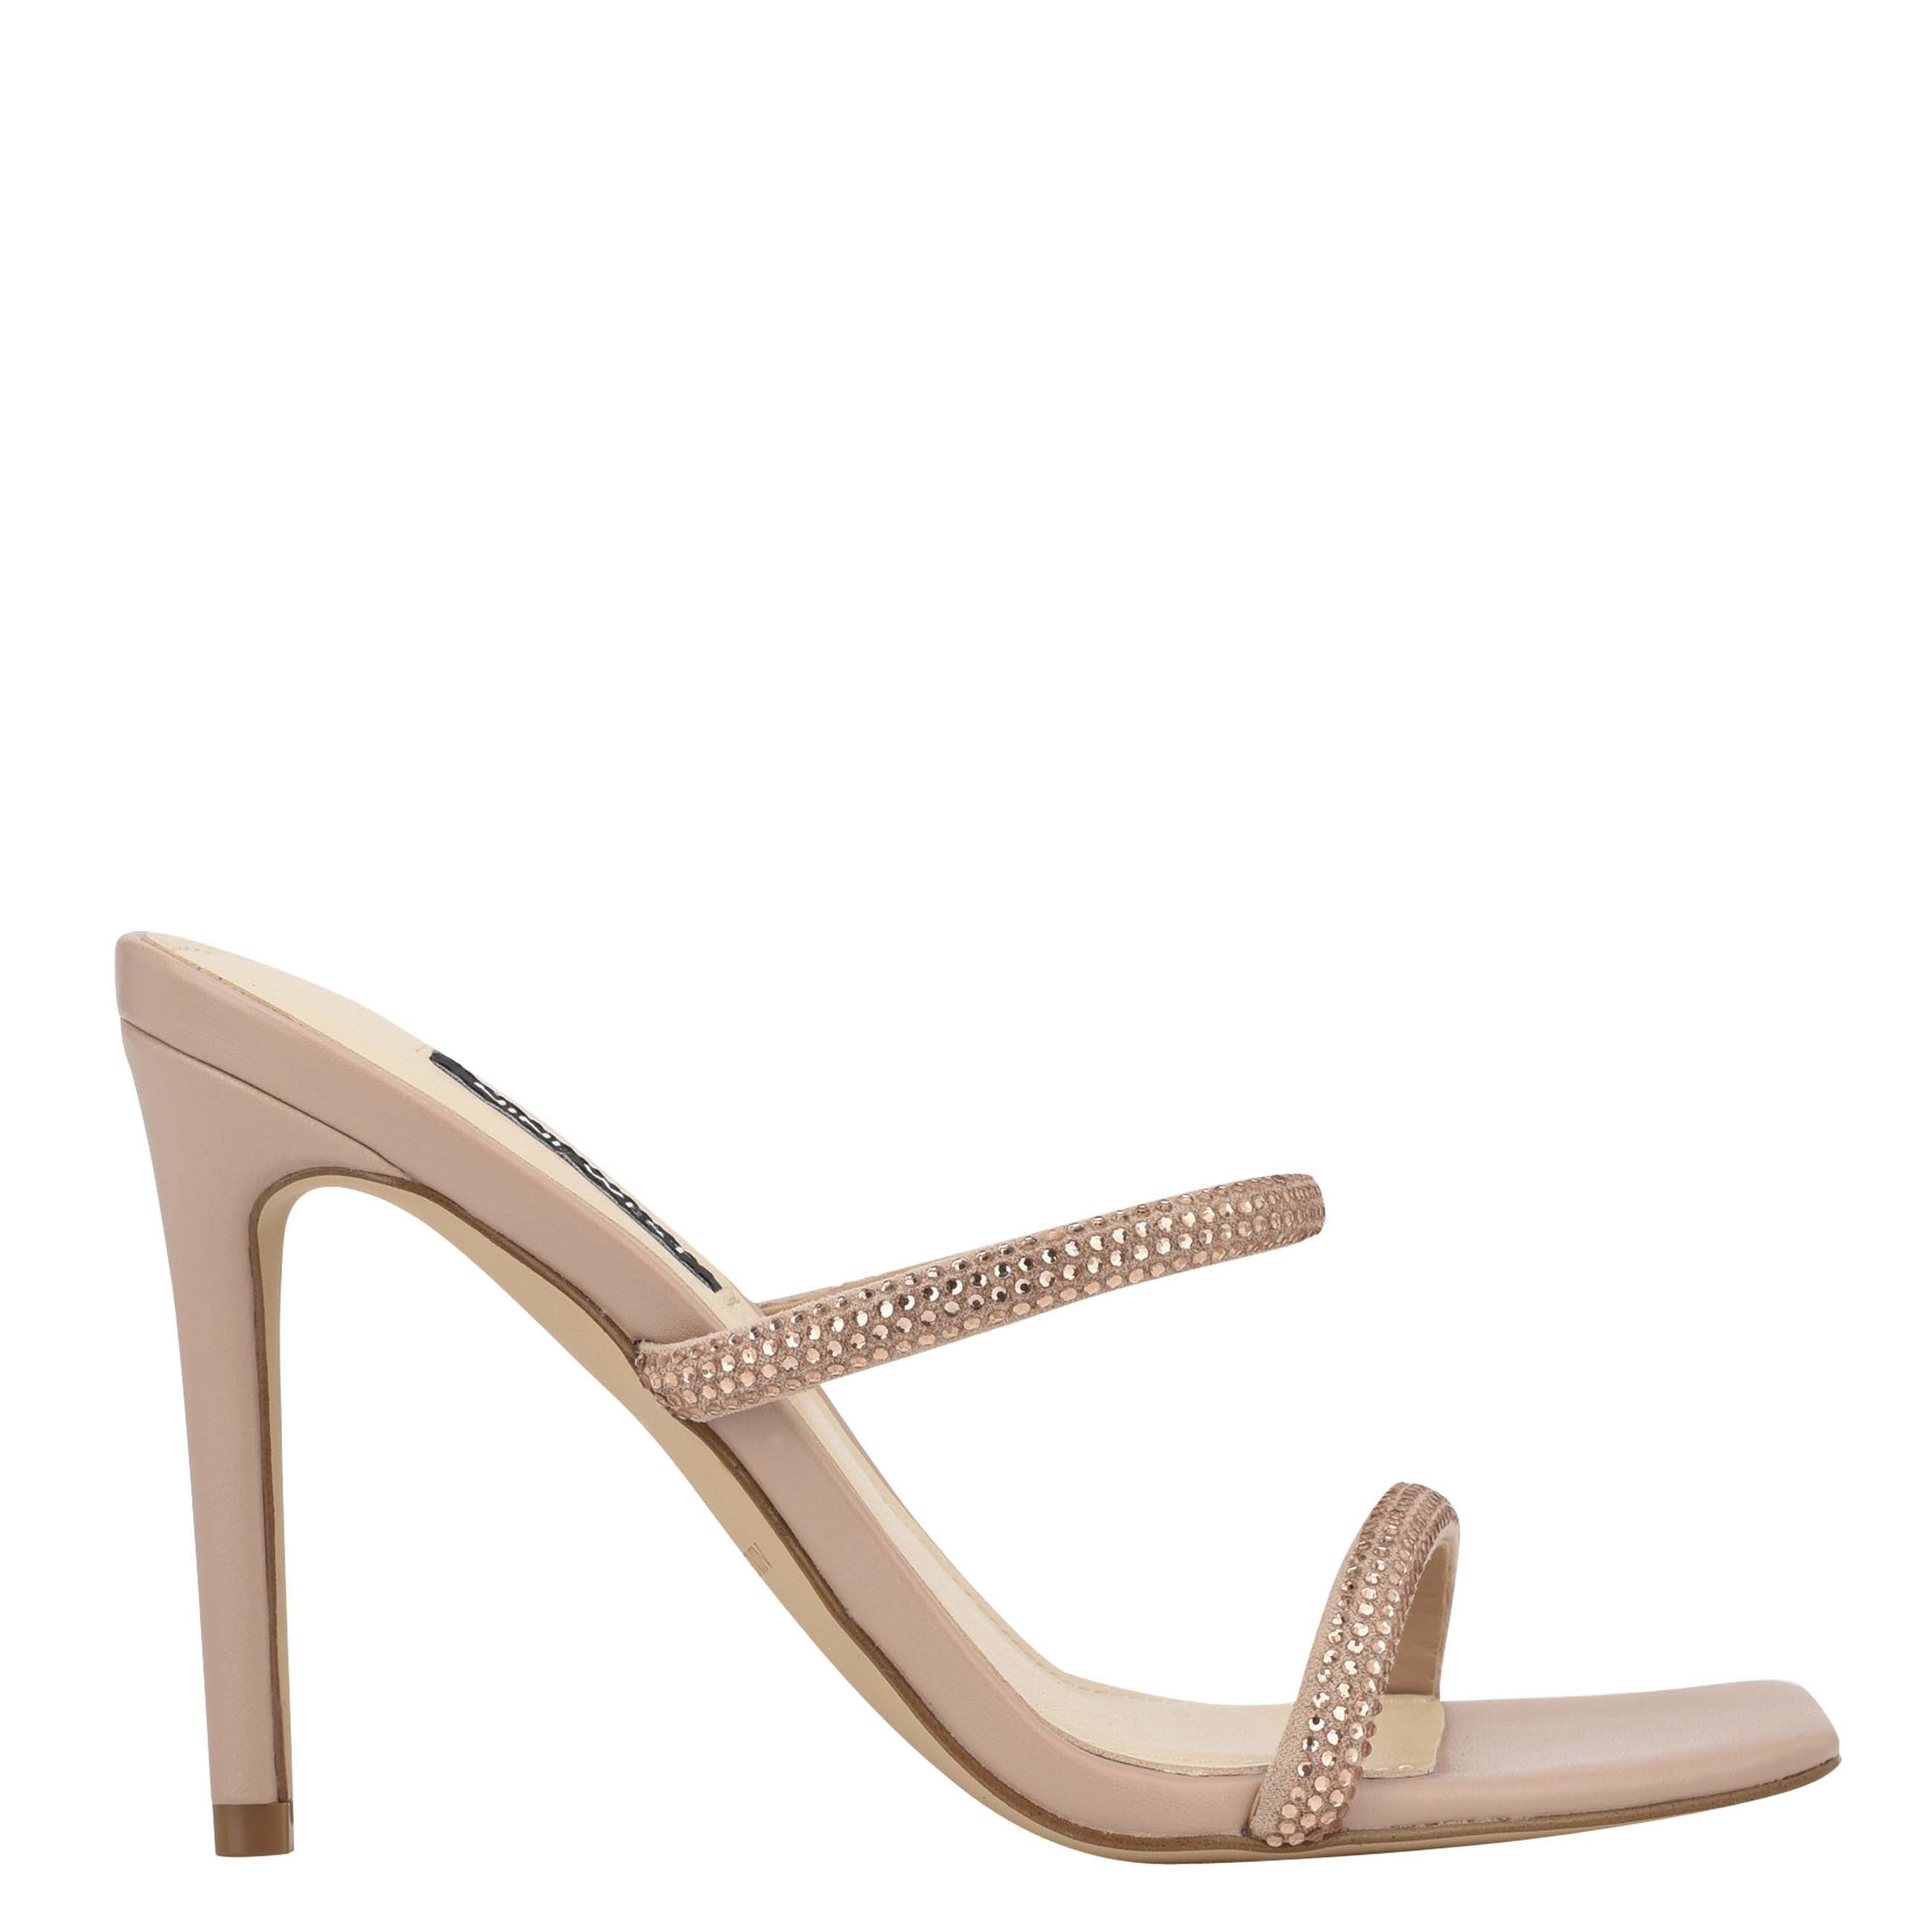 NINEWEST Zarleen Heeled Slide Sandals